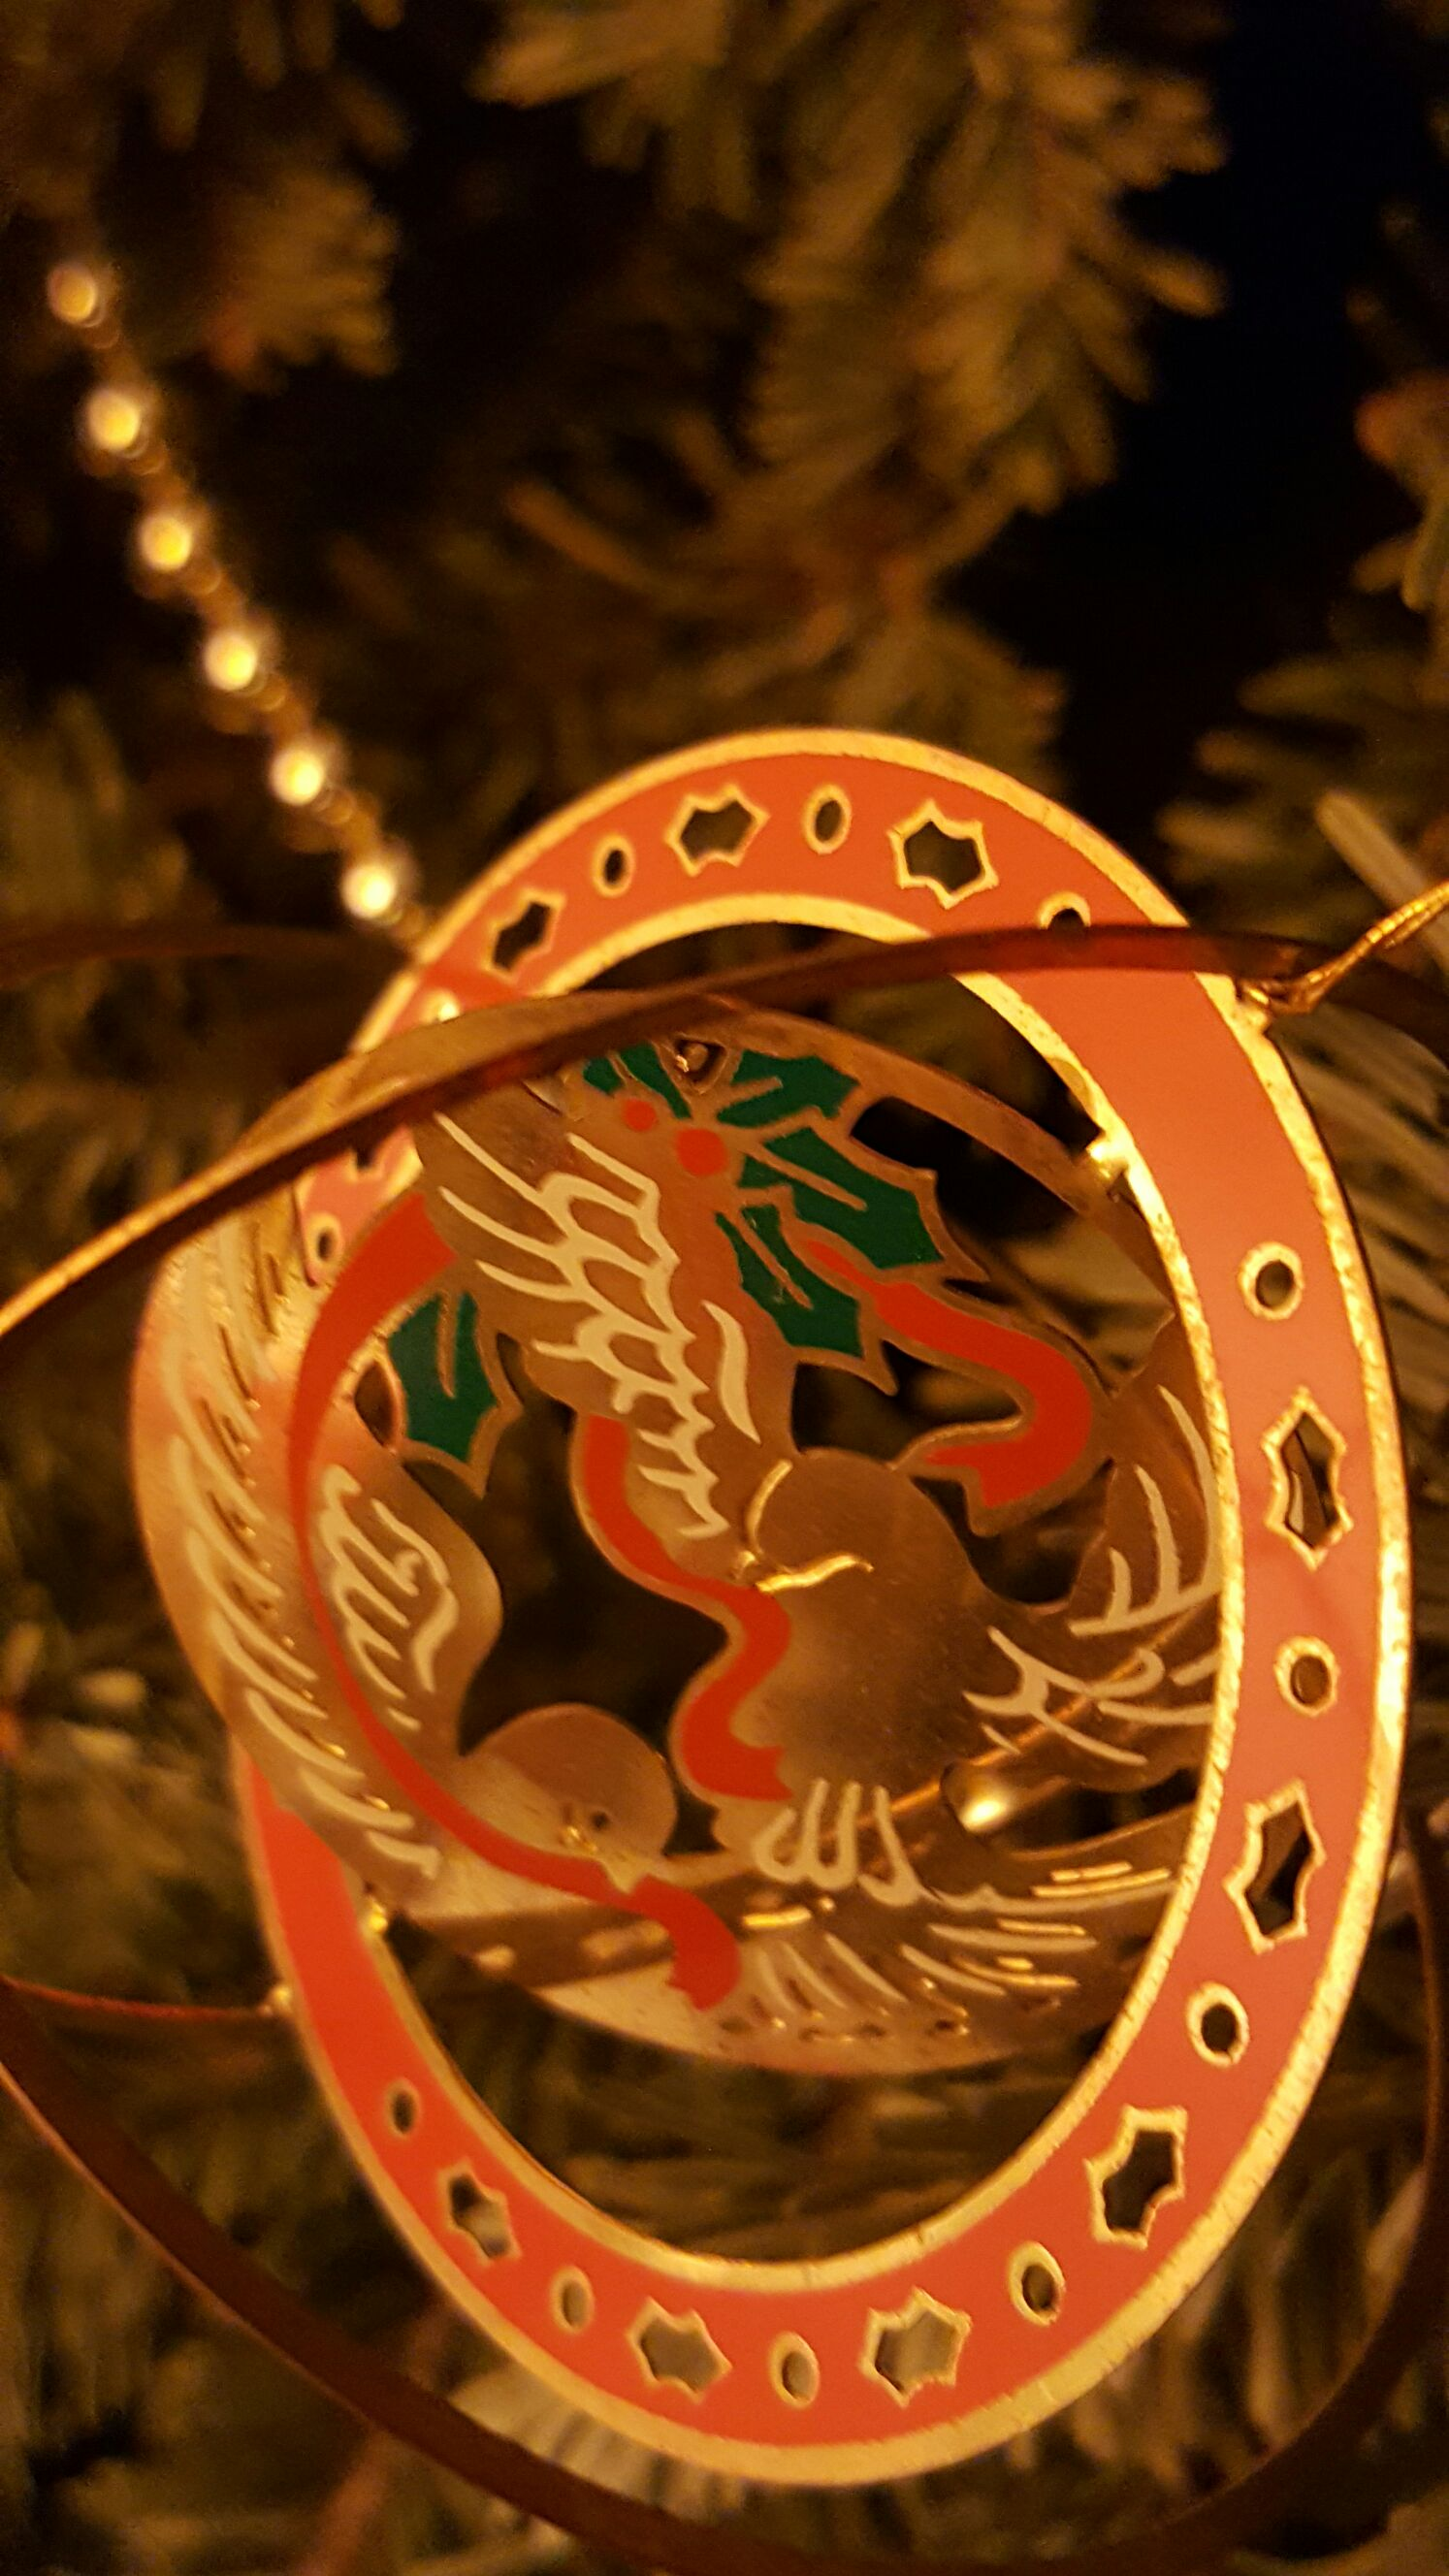 Dove of Peace Ornament back image (back cover, second image)